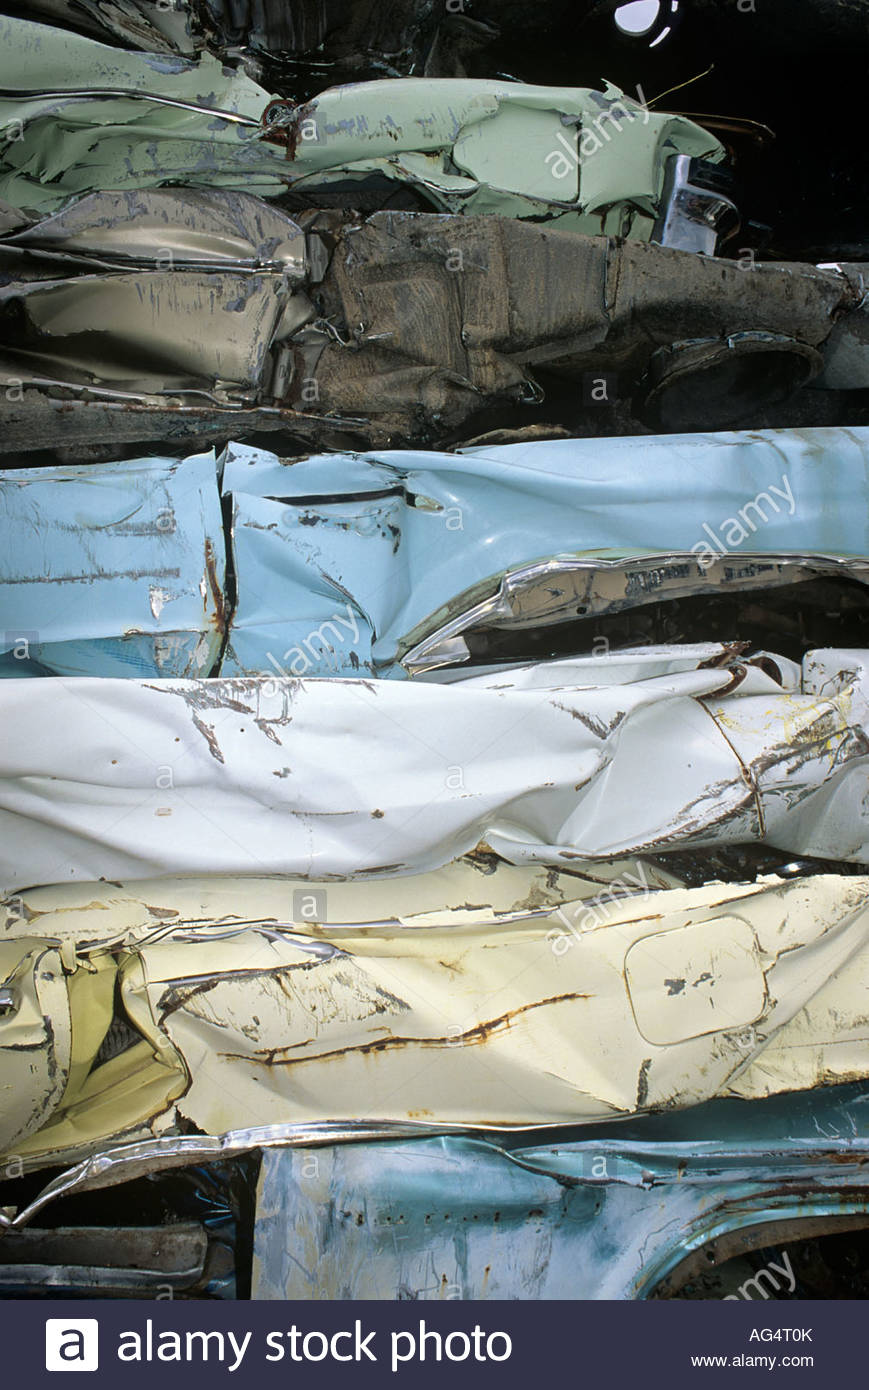 Crushed cars at wrecking yard waiting to be sold for scrap metal - Stock Image